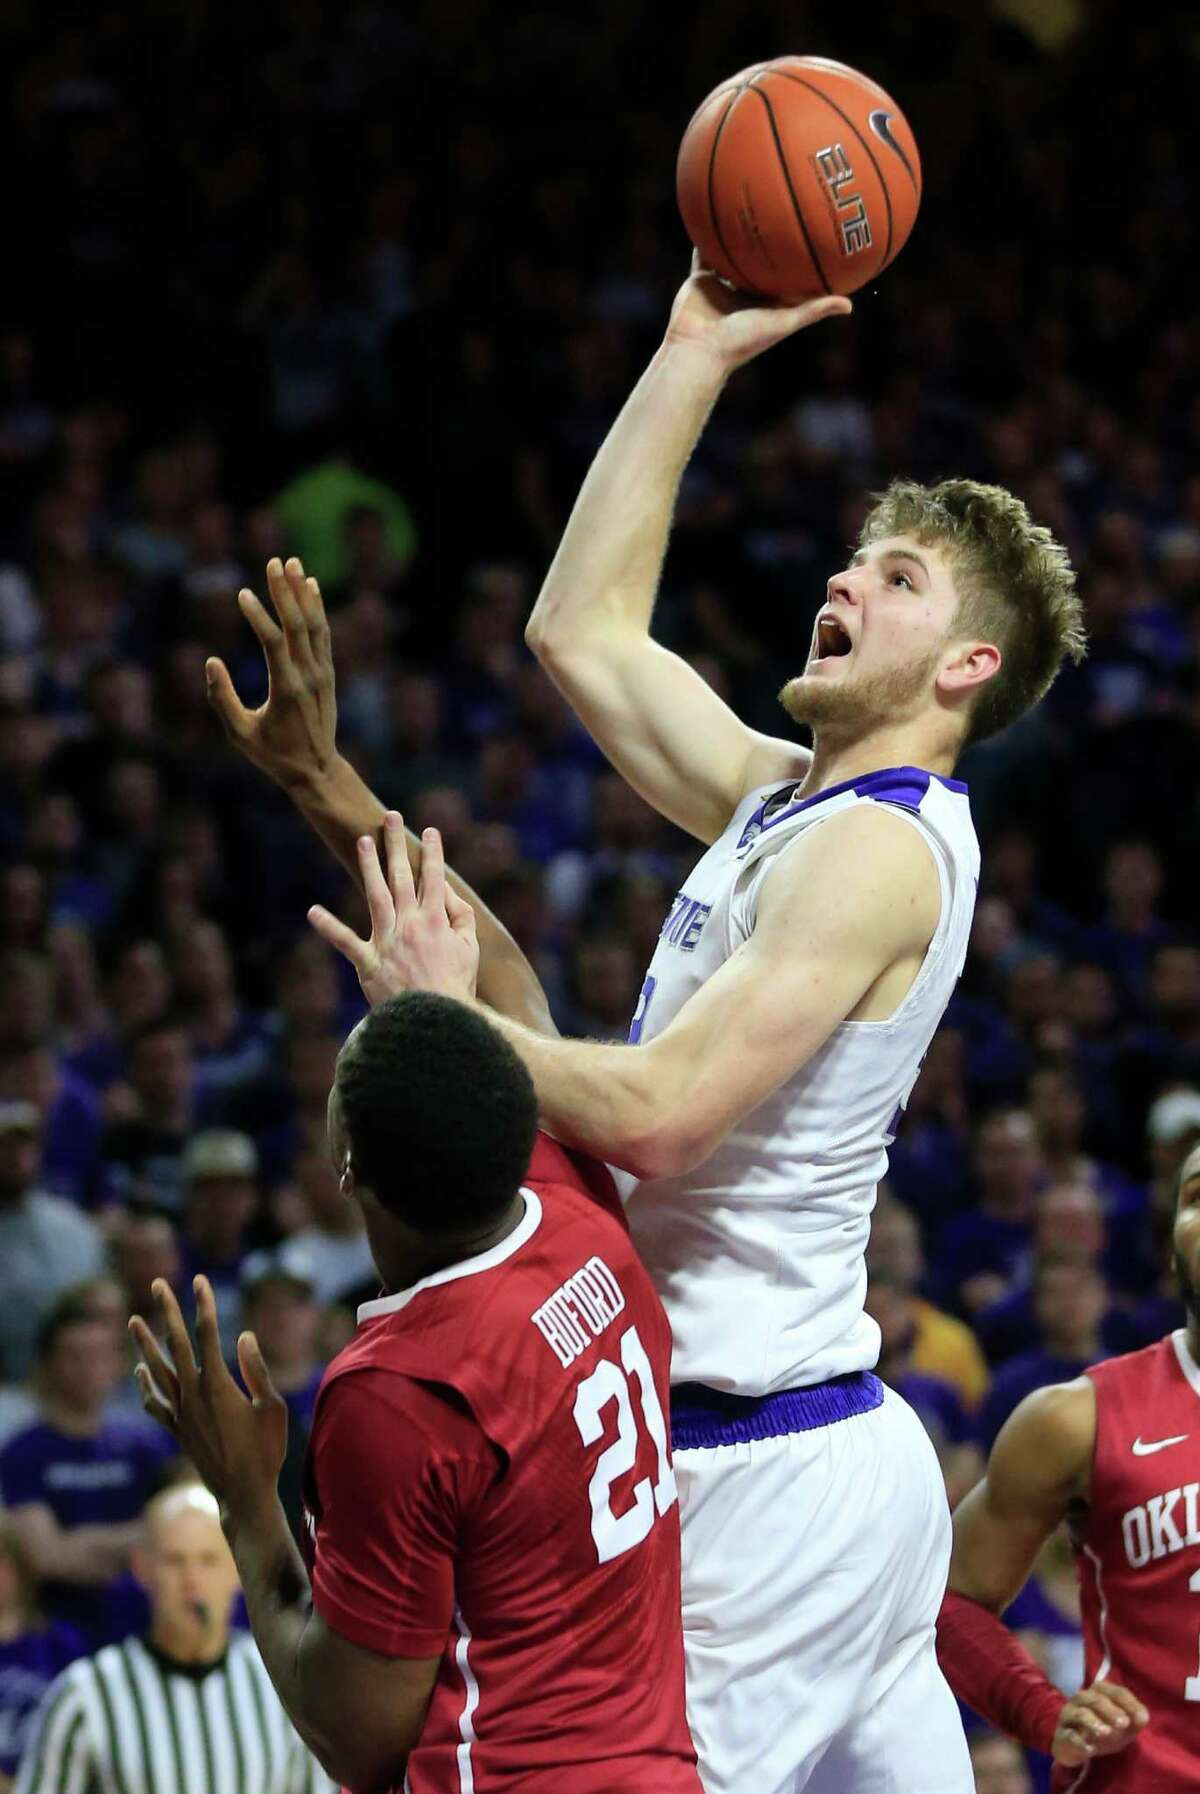 Kansas State forward Dean Wade (32) shoots over Oklahoma forward Dante Buford (21) during the second half of an NCAA college basketball game at Bramlage Coliseum in Manhattan, Kan., Saturday, Feb. 6, 2016. Kansas State defeated Oklahoma 80-69. (AP Photo/Orlin Wagner) ORG XMIT: KSOW113